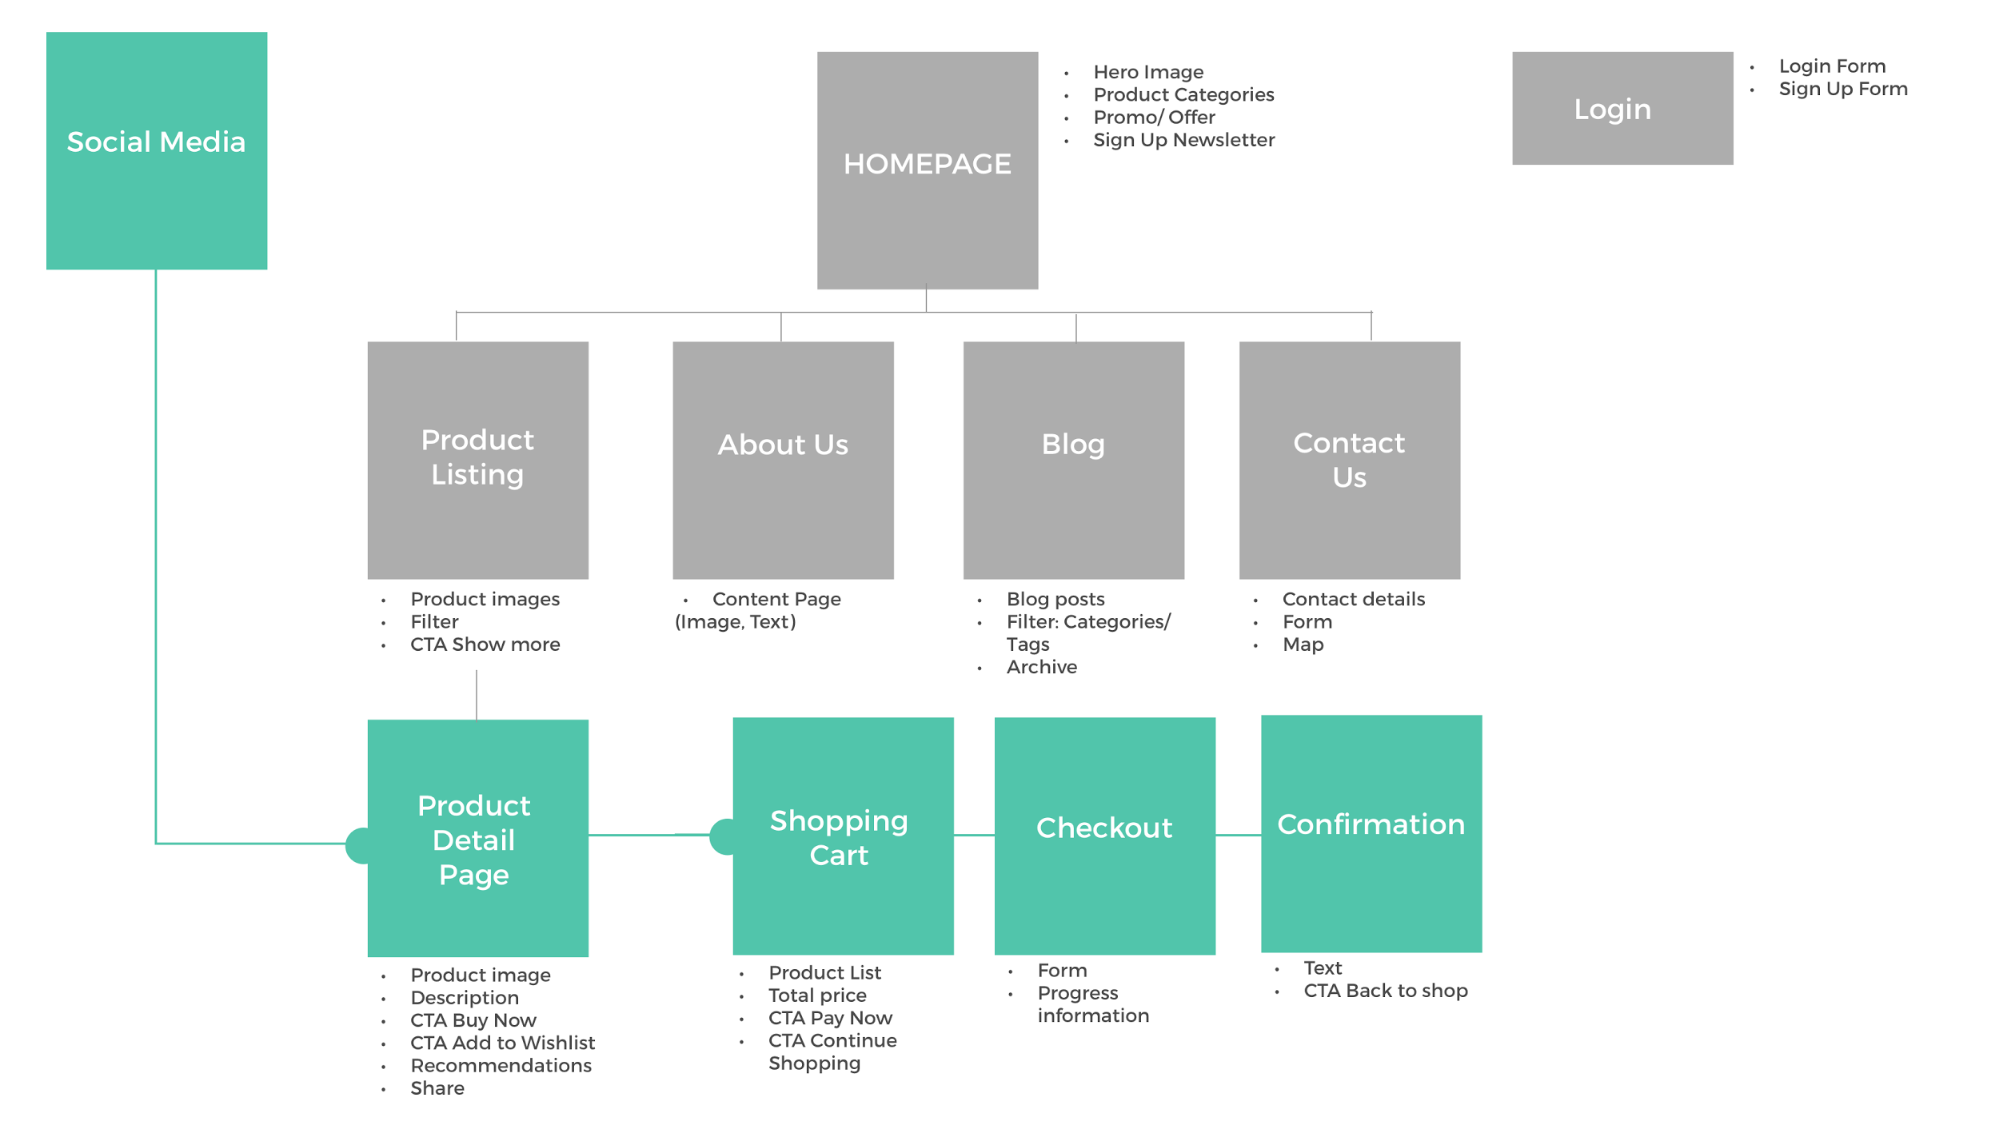 Sitemap and user flow